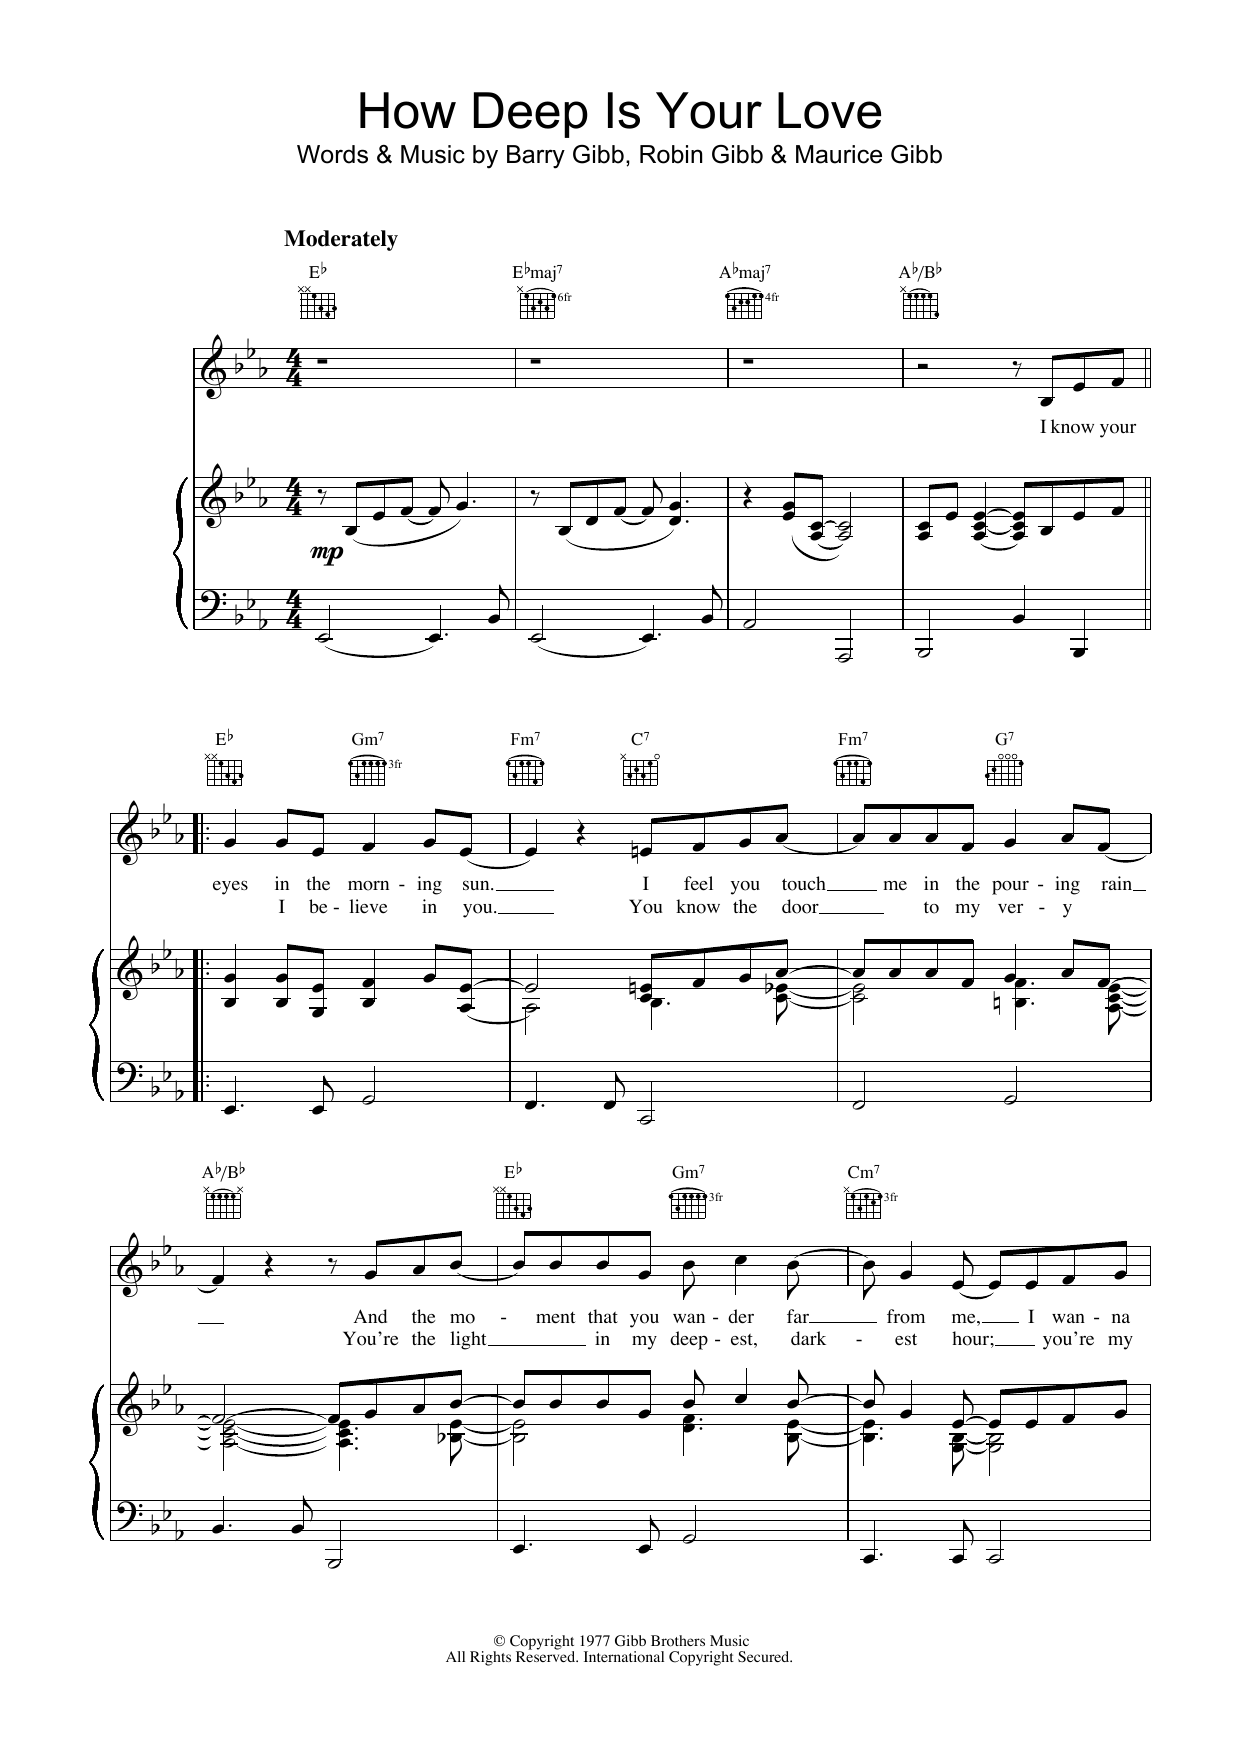 How Deep Is Your Love sheet music for voice, piano or guitar by Robin Gibb